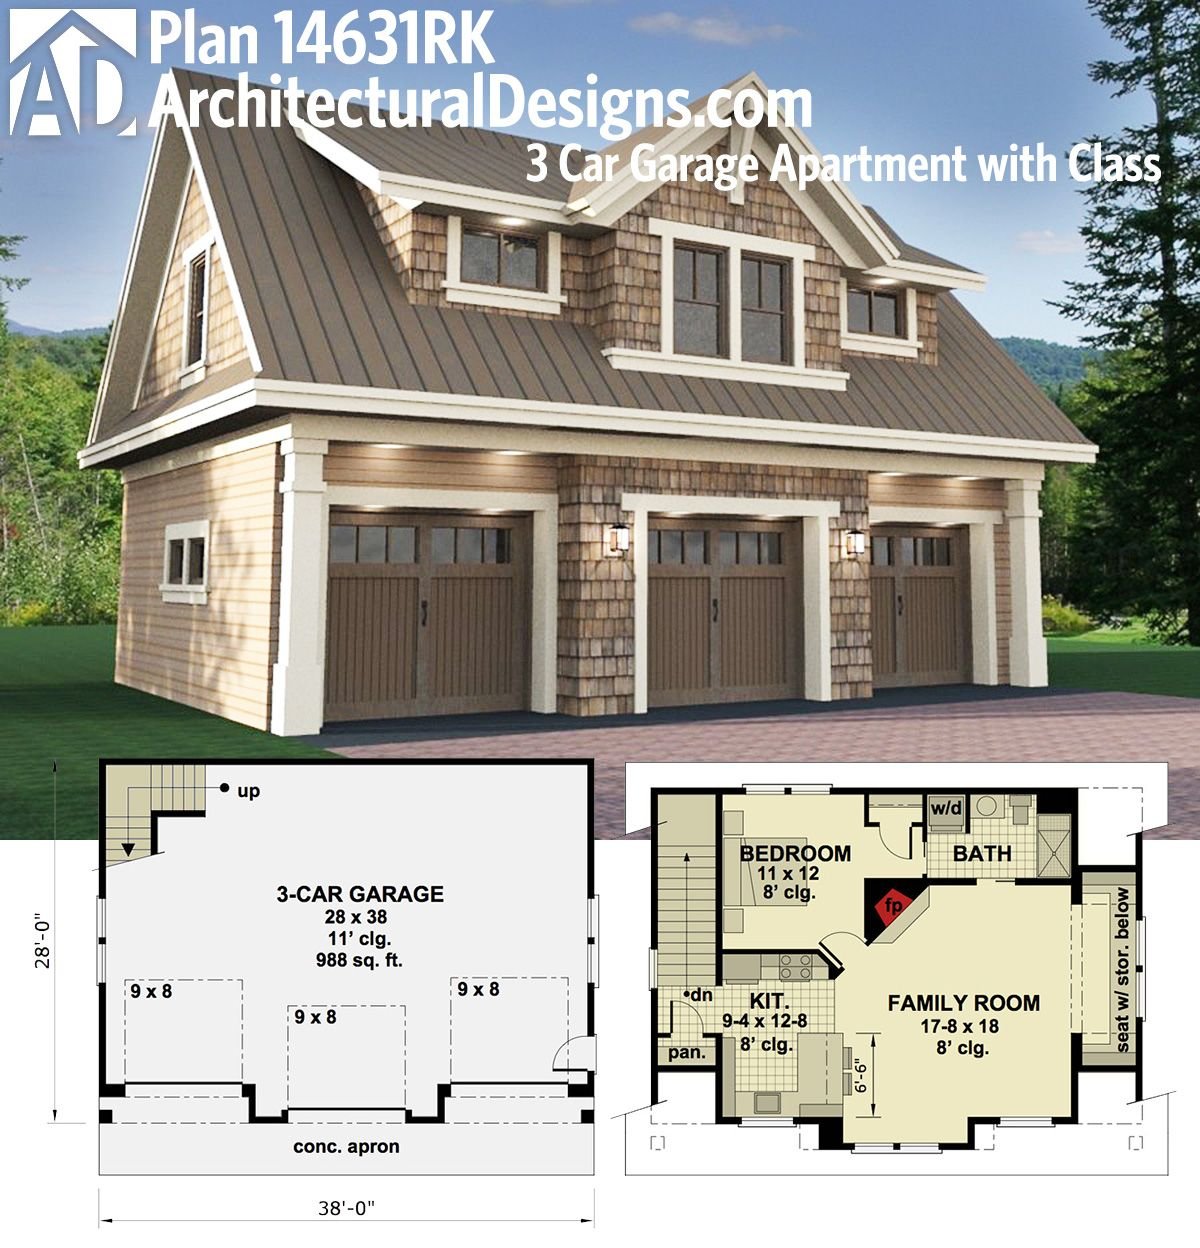 Architectural designs carriage house plan 14631rk gives for Garage style homes